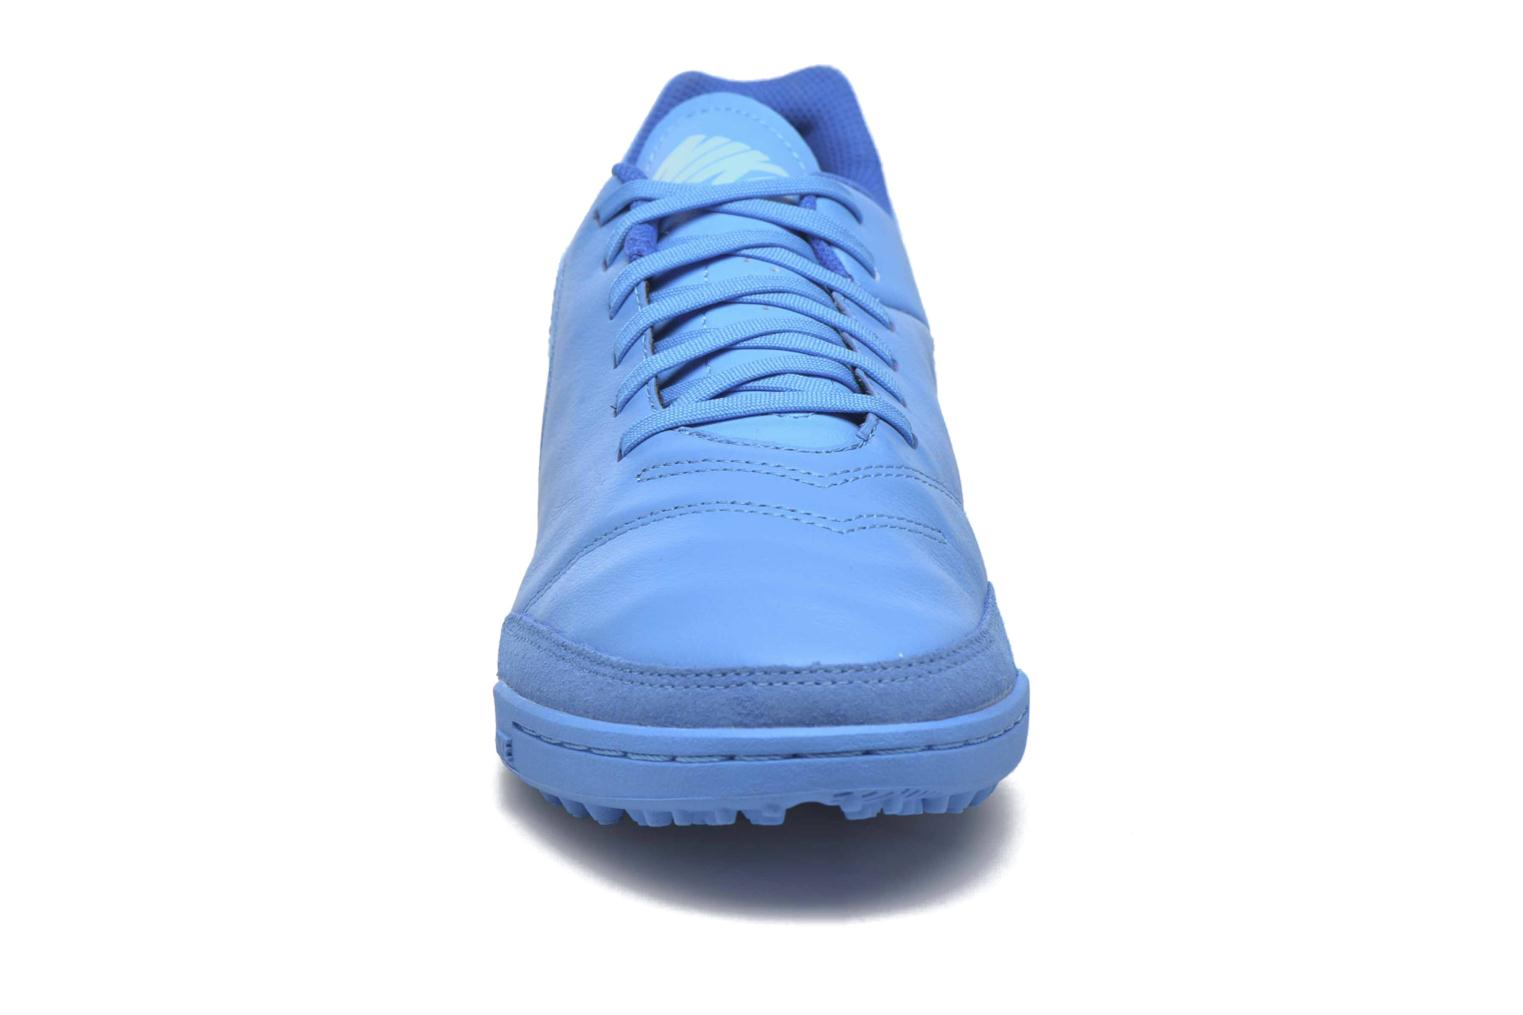 Tiempox Genio II Leather Tf Blue Glow/Polarized Blue-Soar